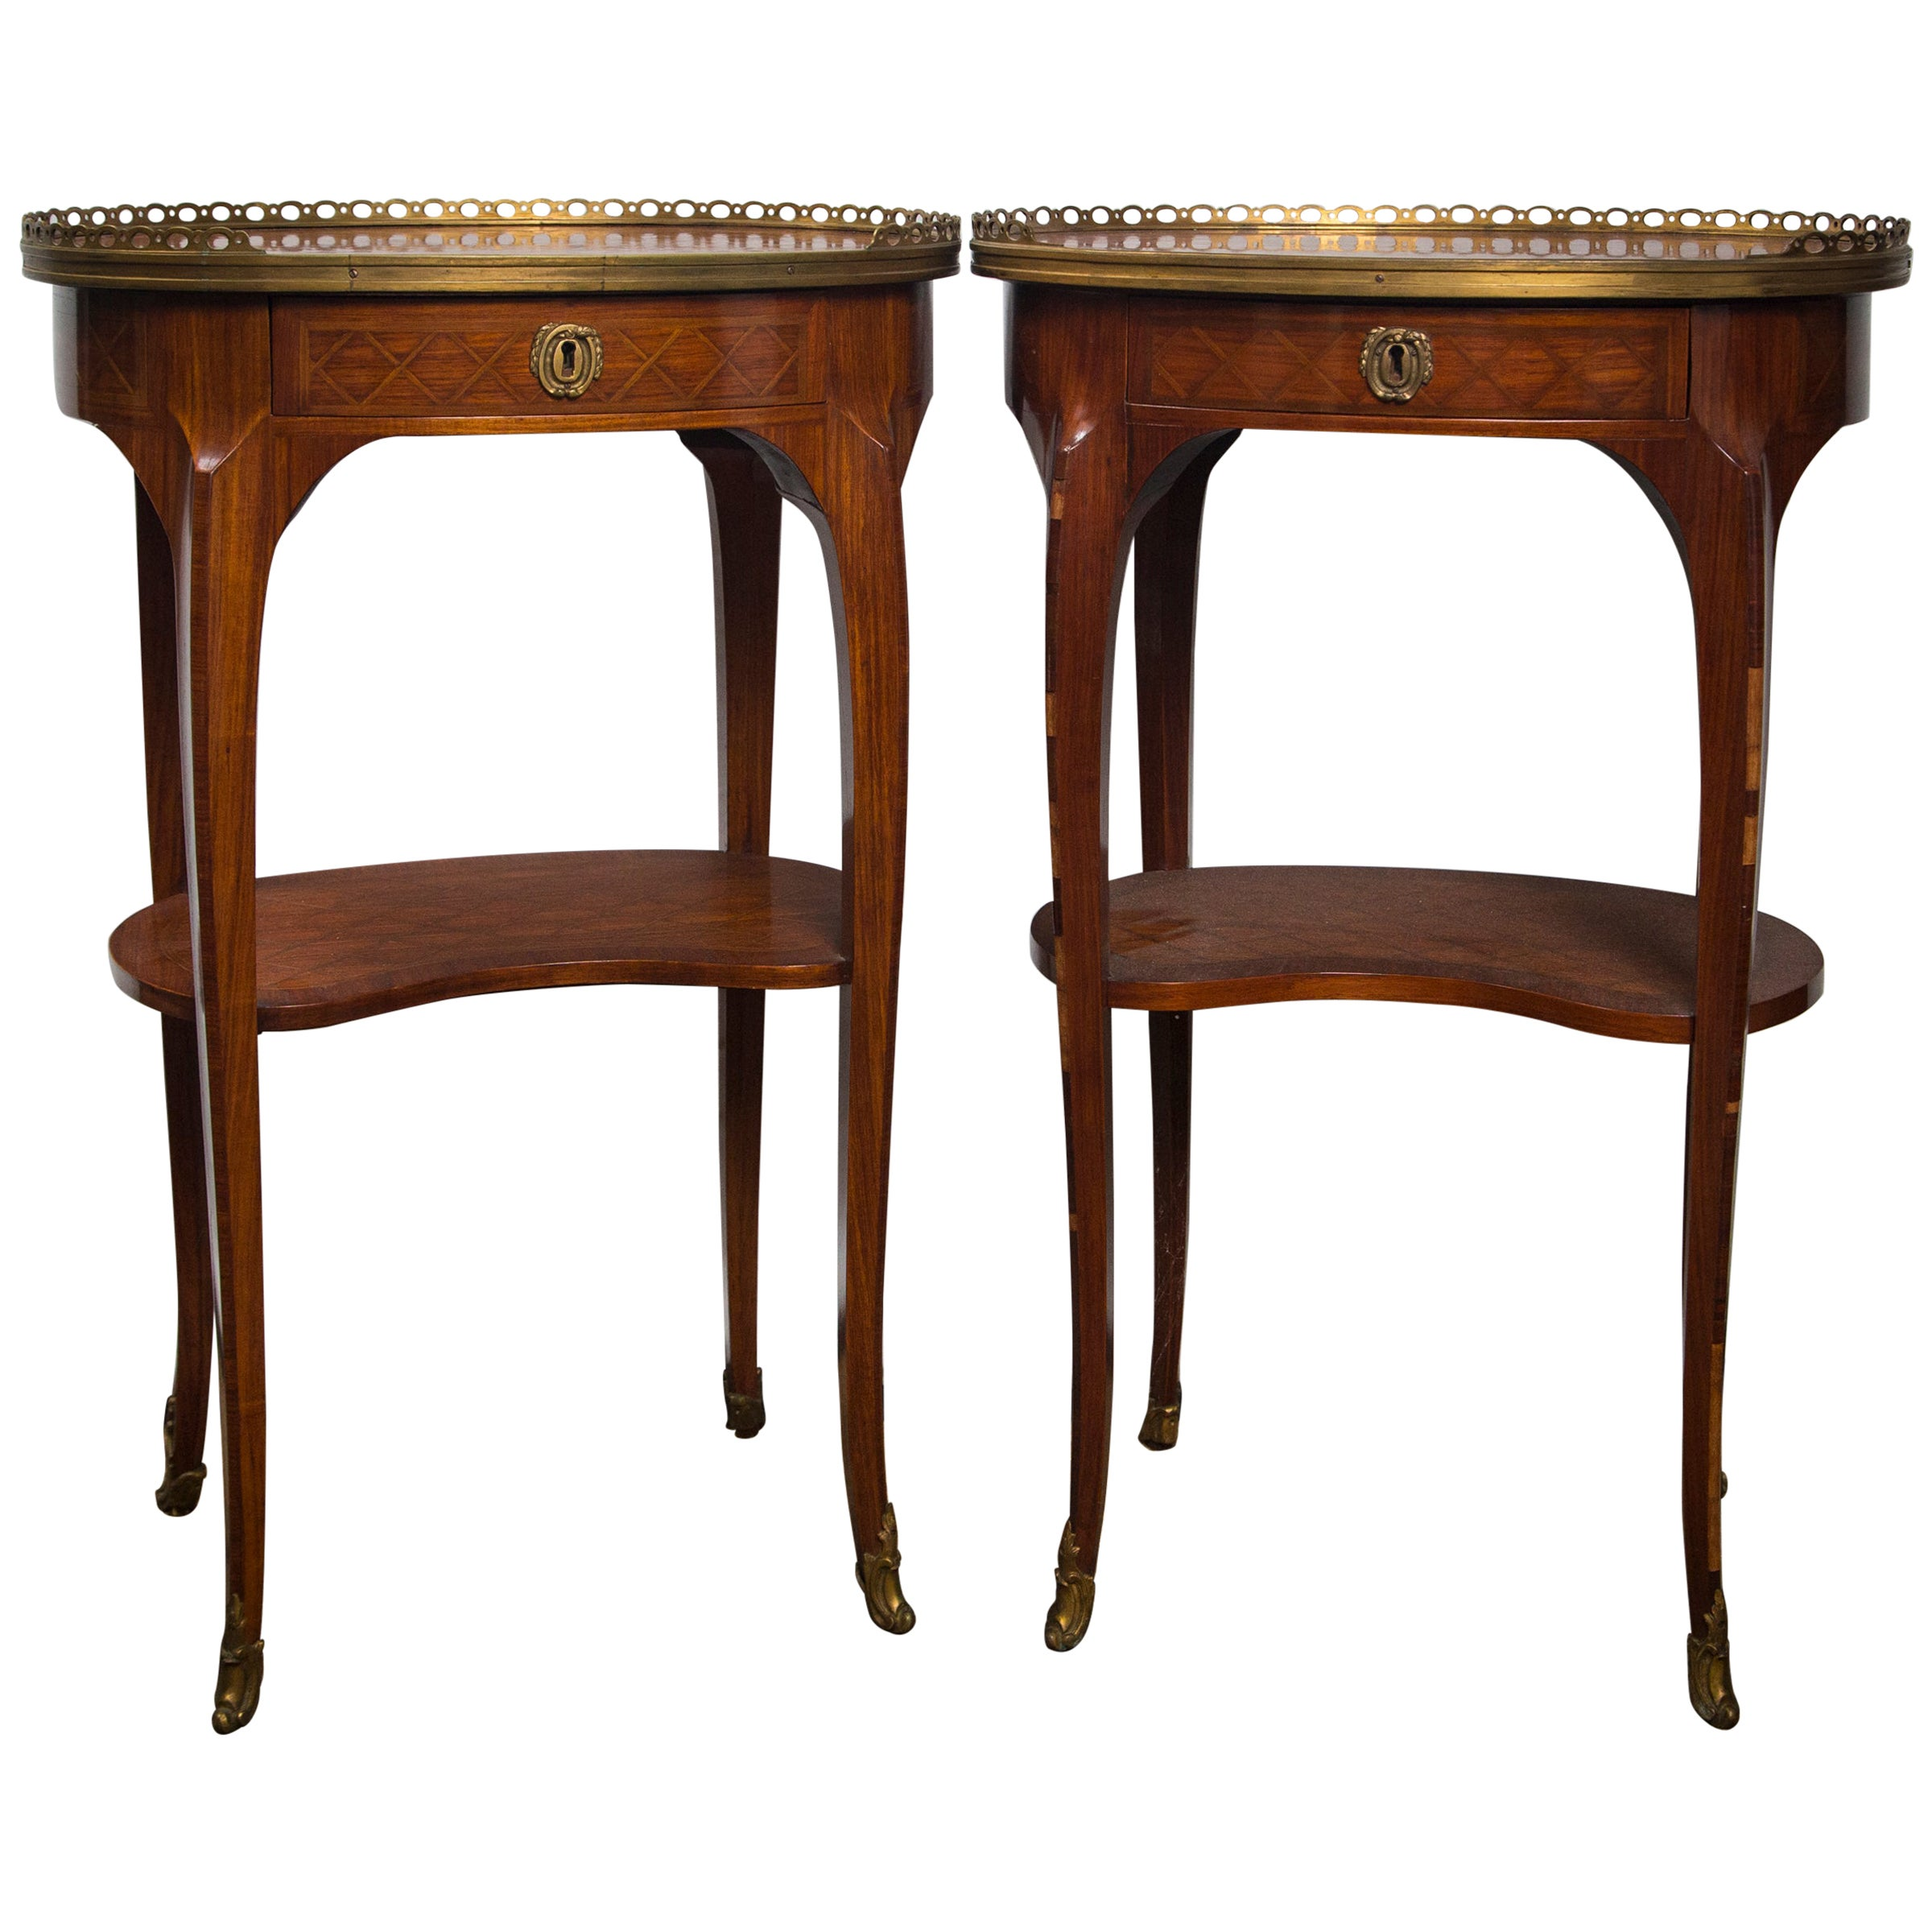 Pair of Mahogany and Brass Inlaid End Tables